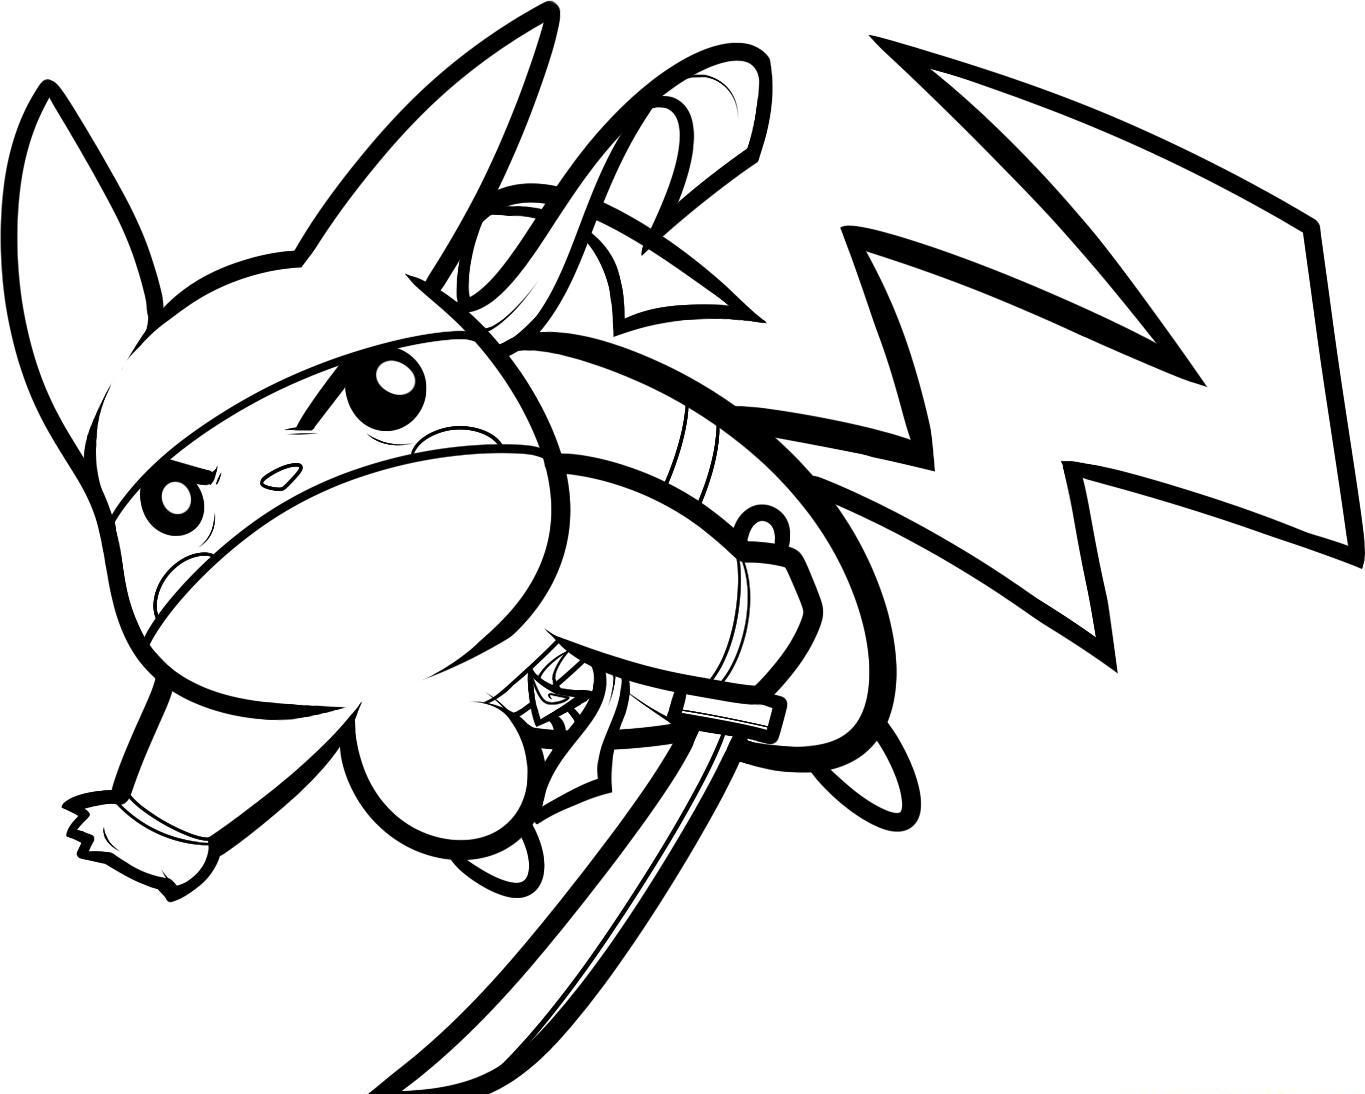 1365x1094 Ninja Pikachu Coloring Page Colouring Pages